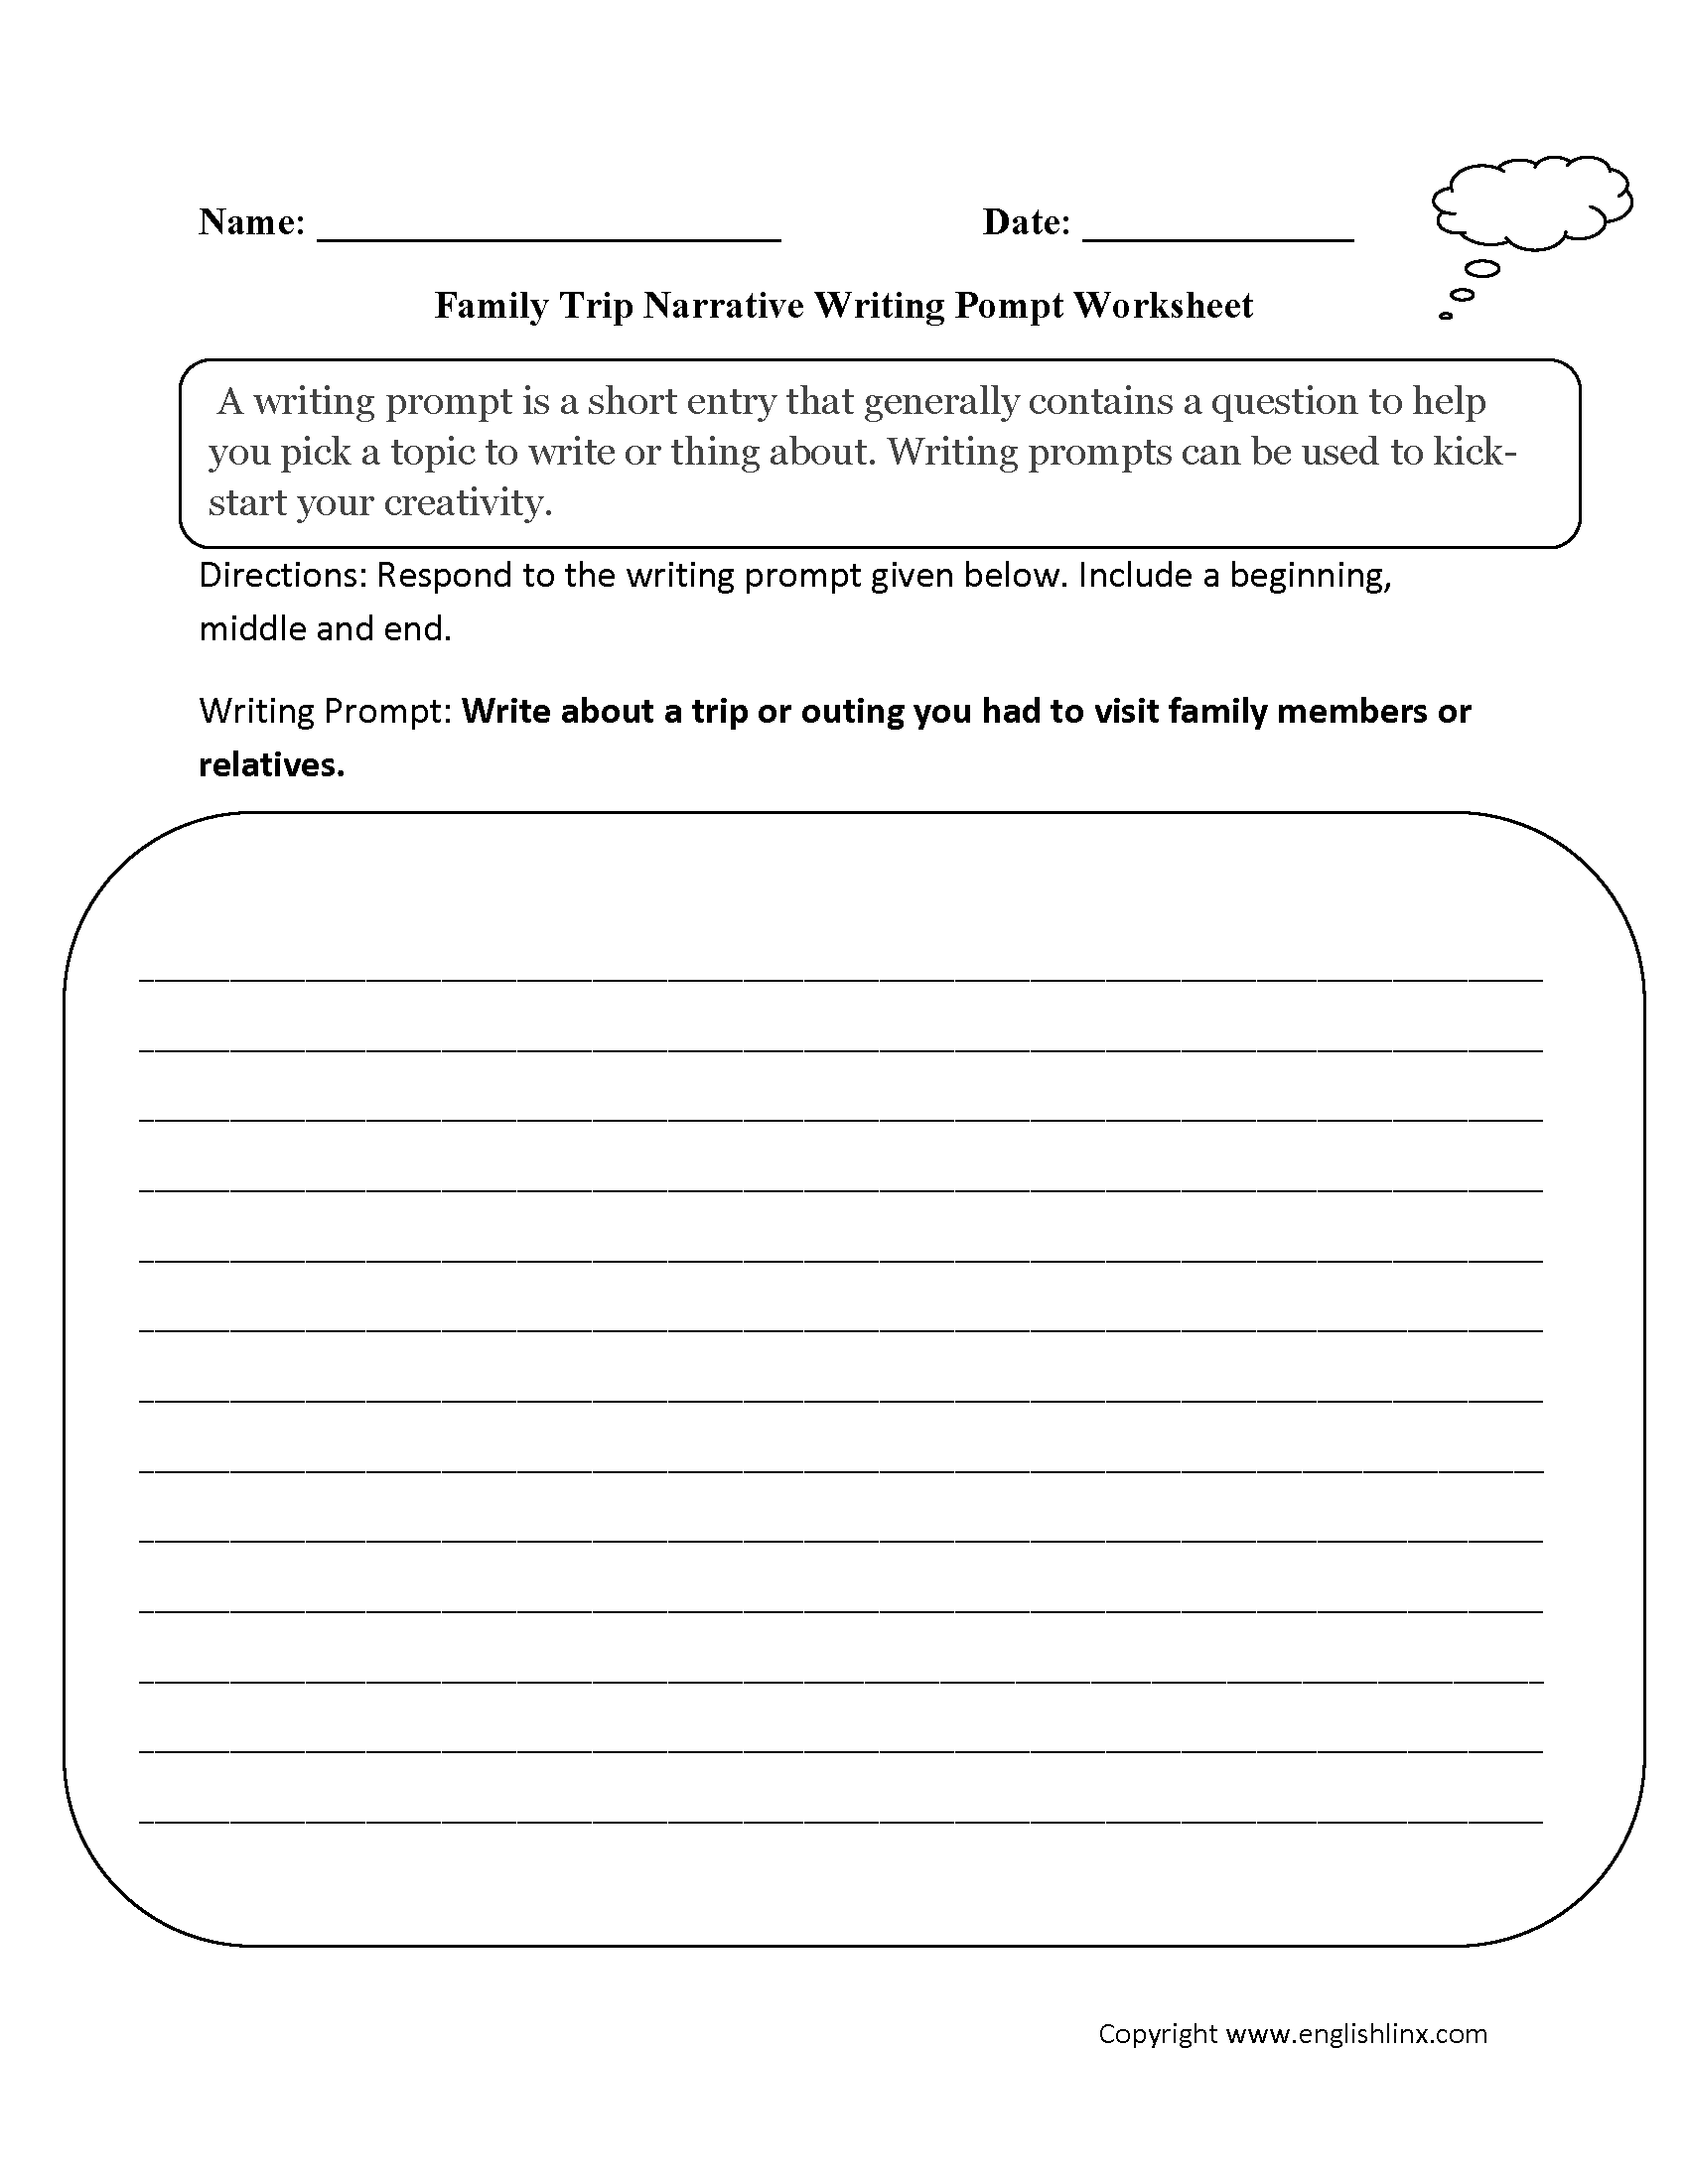 5 paragraph essay planning sheets Argumentative essay planning sheet my topic and my side reason 1 and three facts and/or stats that support that reason 12/12/2014 5:38:30 pm.